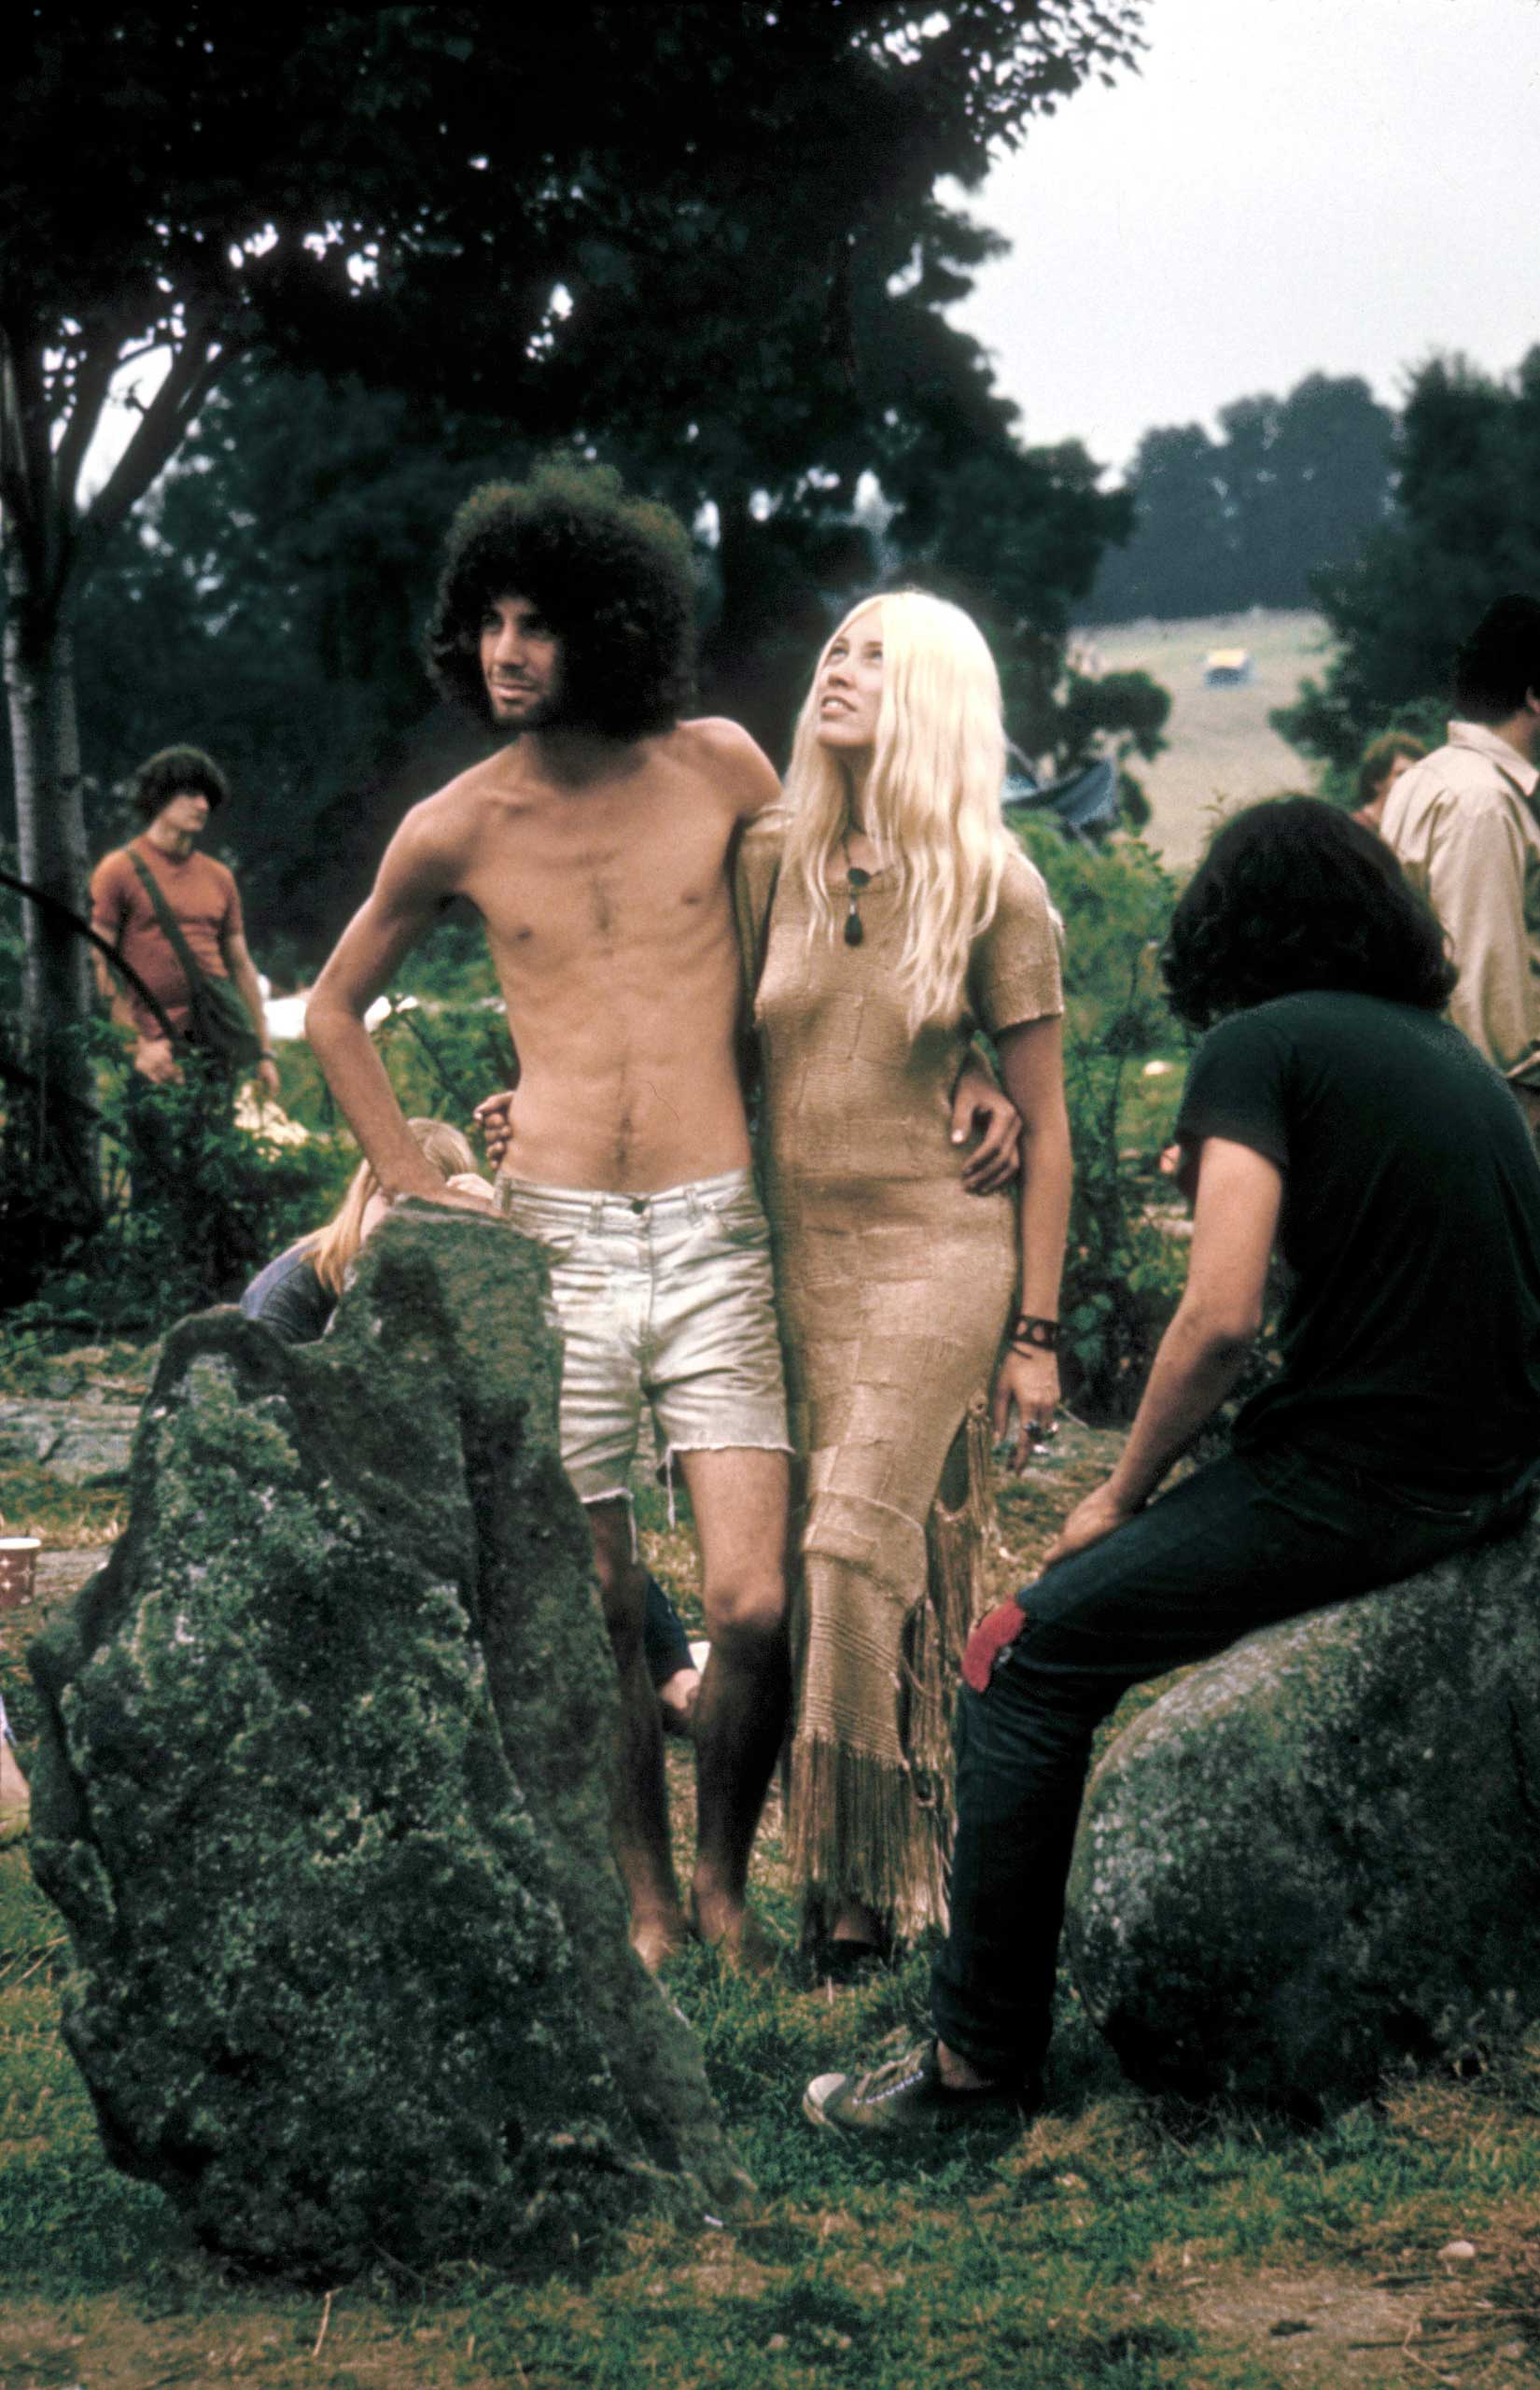 Not published in LIFE. Woodstock Music & Art Fair, August 1969.  I like this shot of a handsome young hippie couple,  photographer John Dominis told LIFE.com.  They seem so comfortable with each other. A very endearing image, I think.